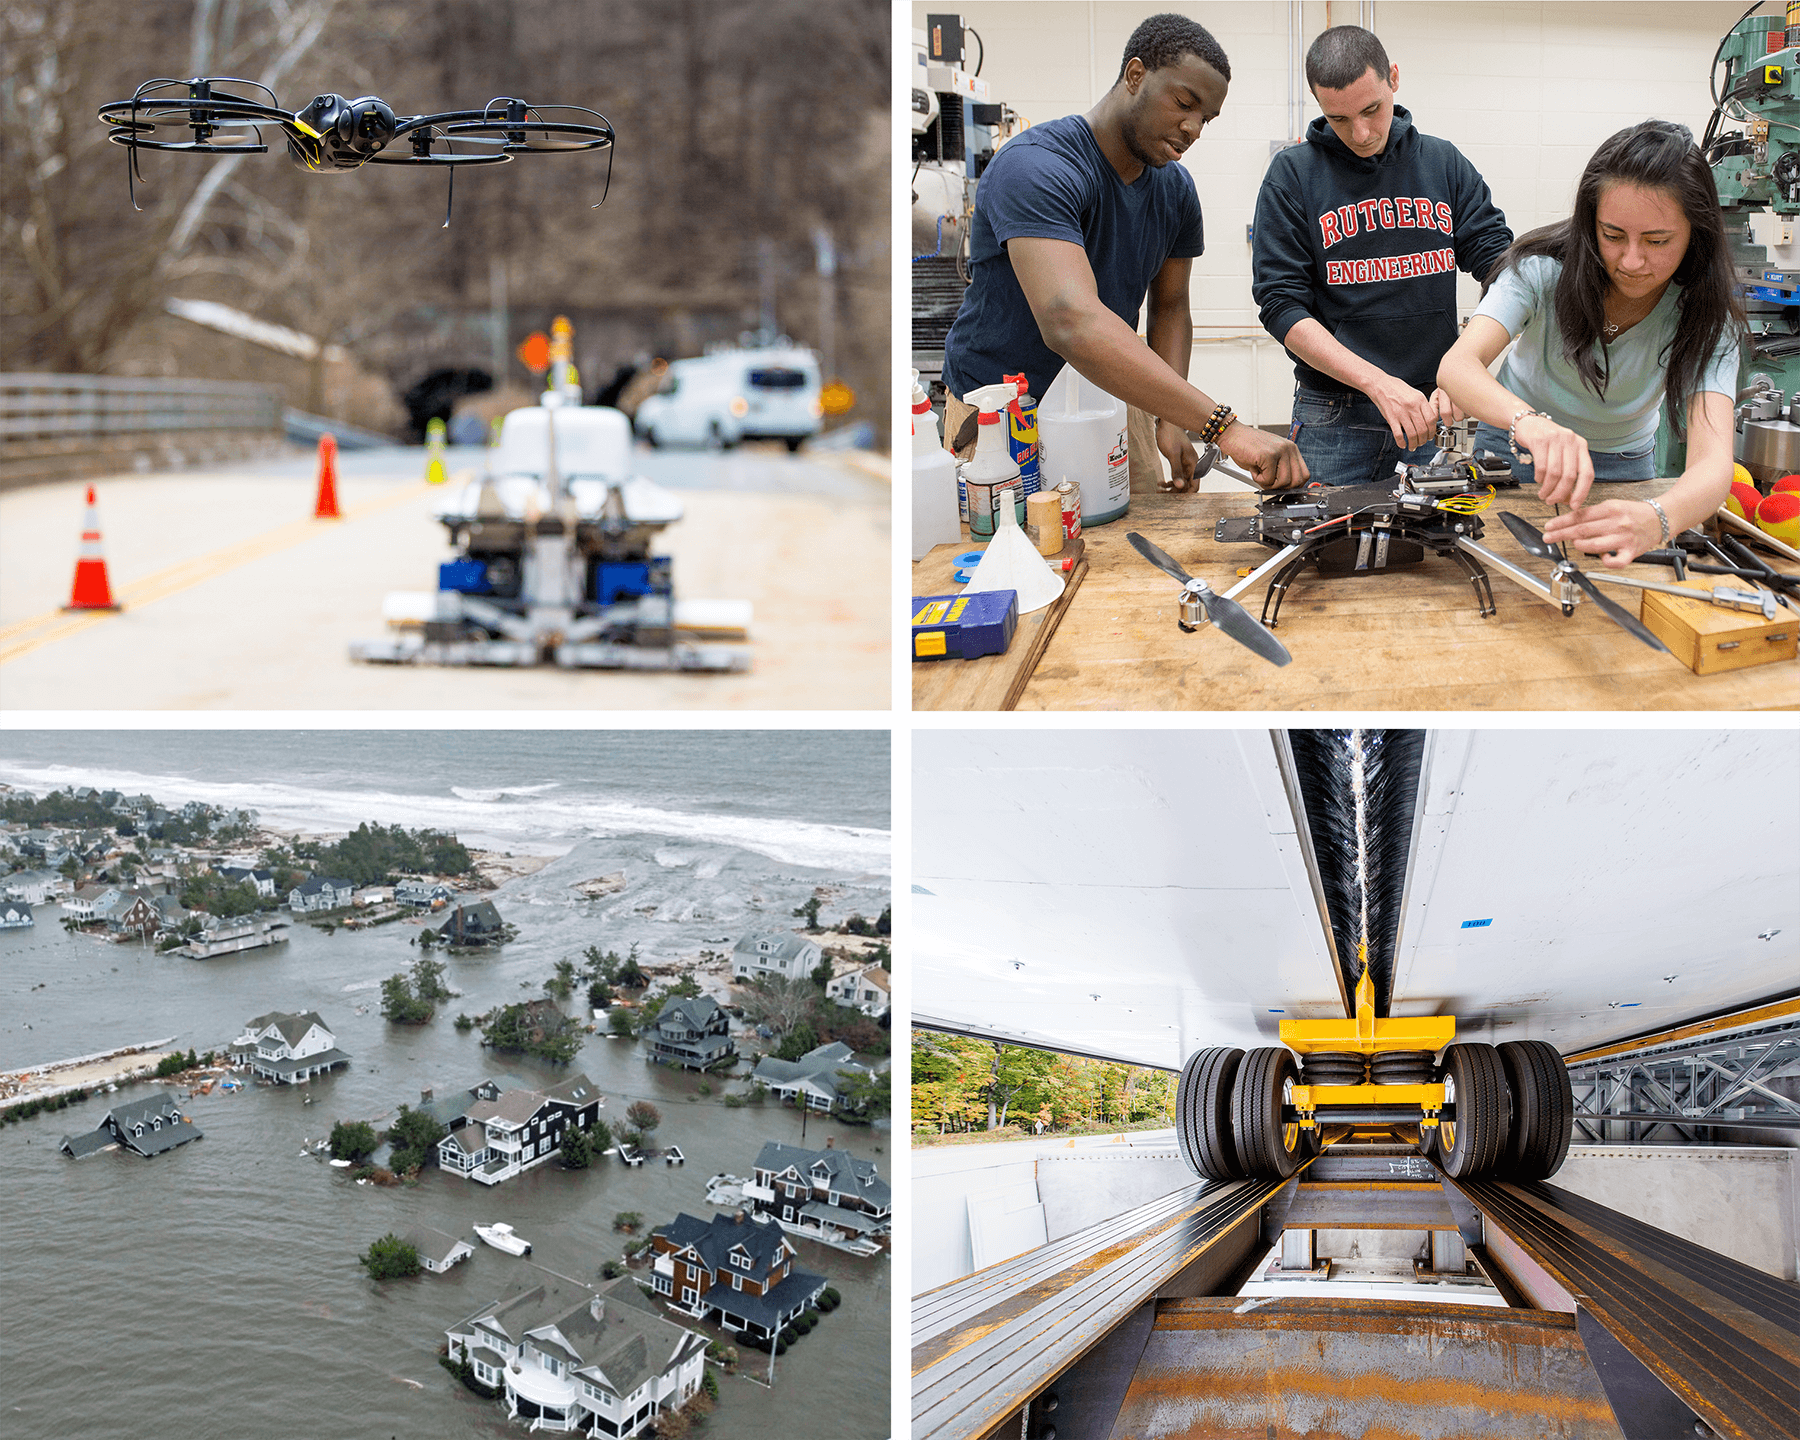 photos of CAIT technologies, Hurricane Sandy, and students building a drone